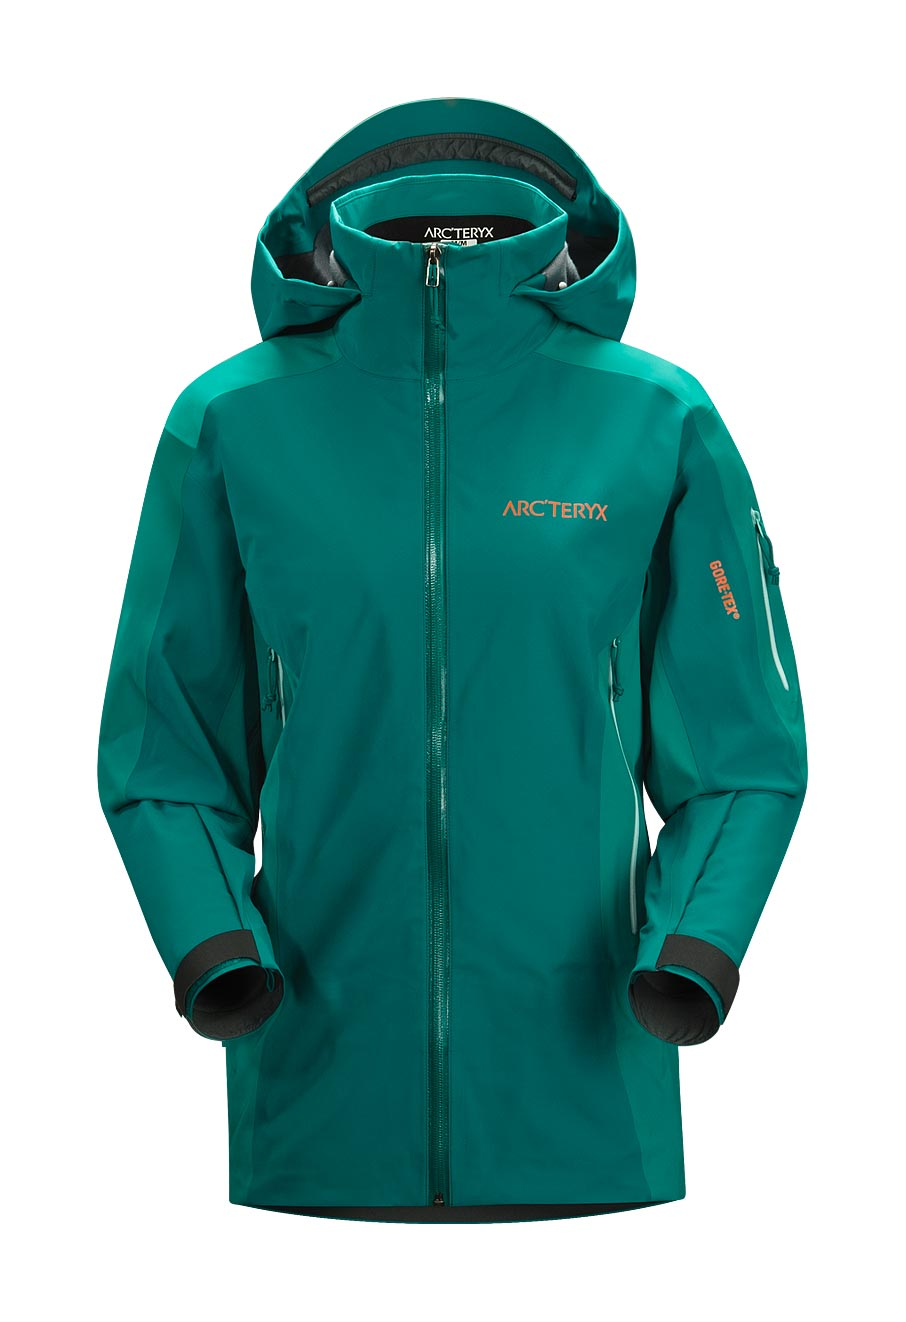 Arcteryx Jackets Women Peacock Stingray Jacket